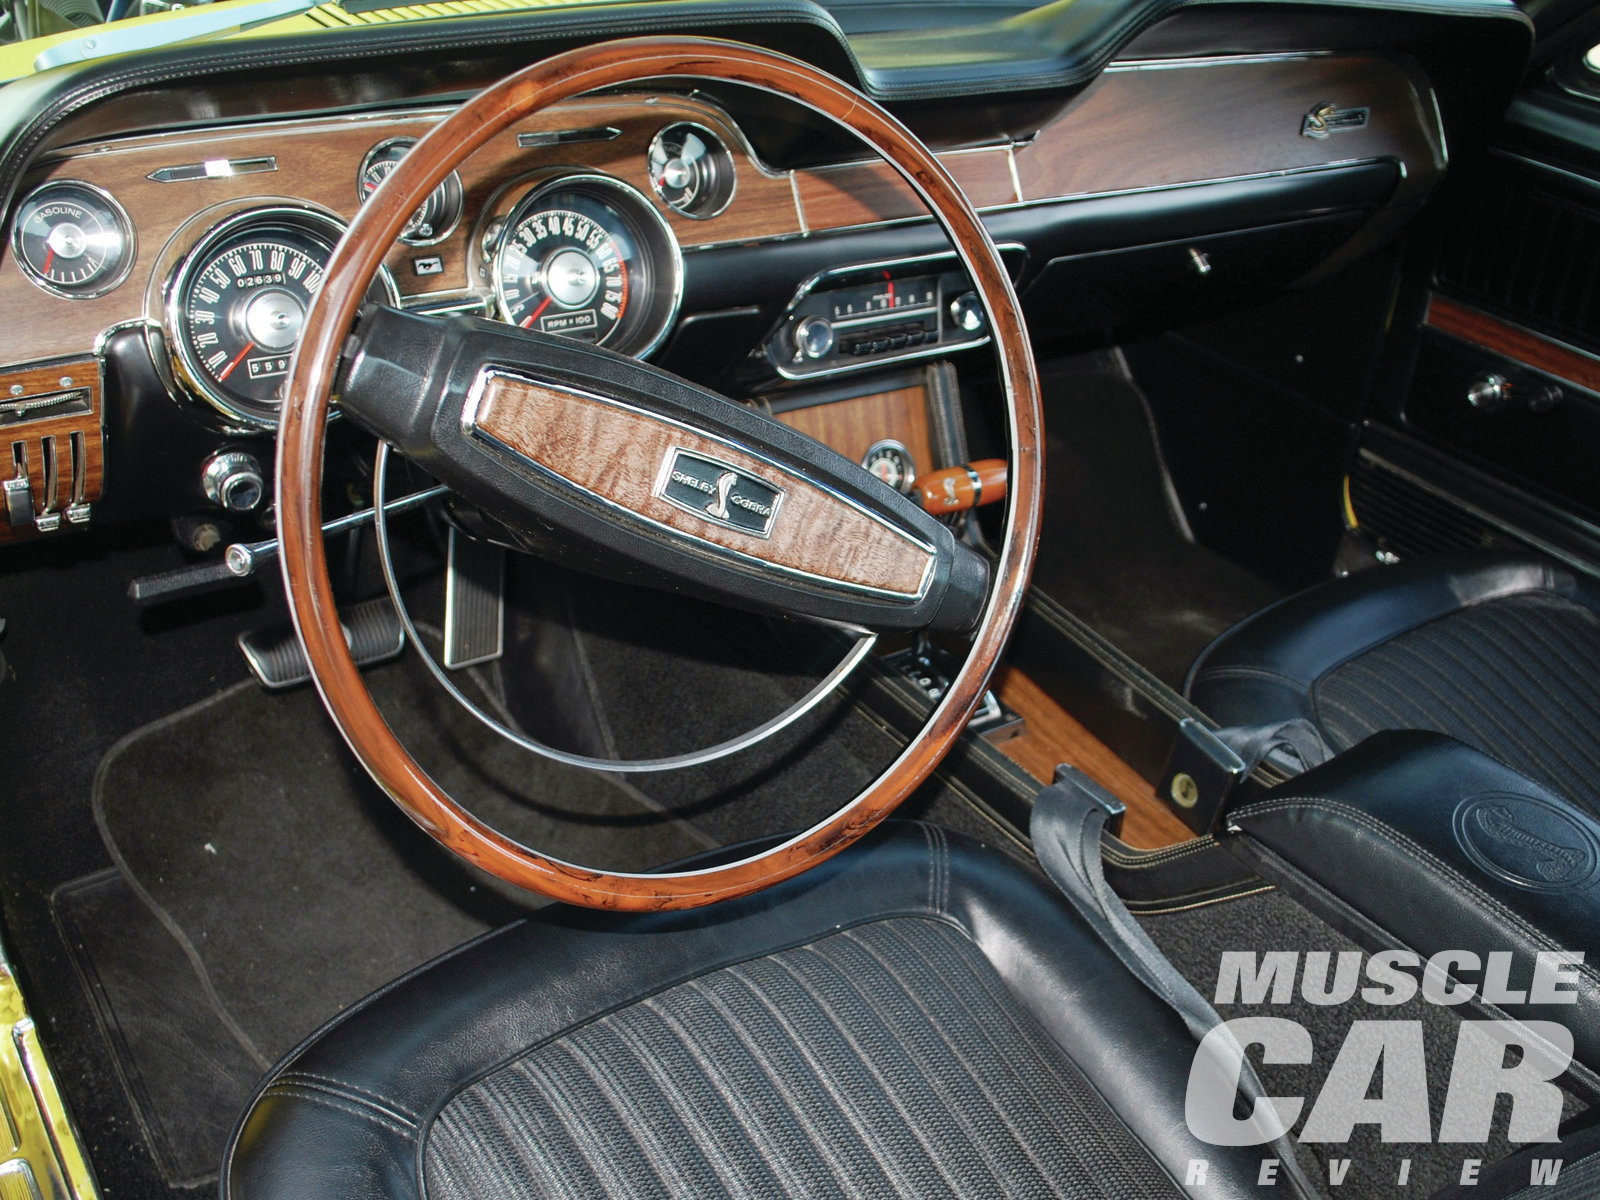 The Shelbys became more posh in the '68 model year, with interior appointments that included woodgrain vinyl inserts and a swing-away steering column to hold the T-bird–like wheel.